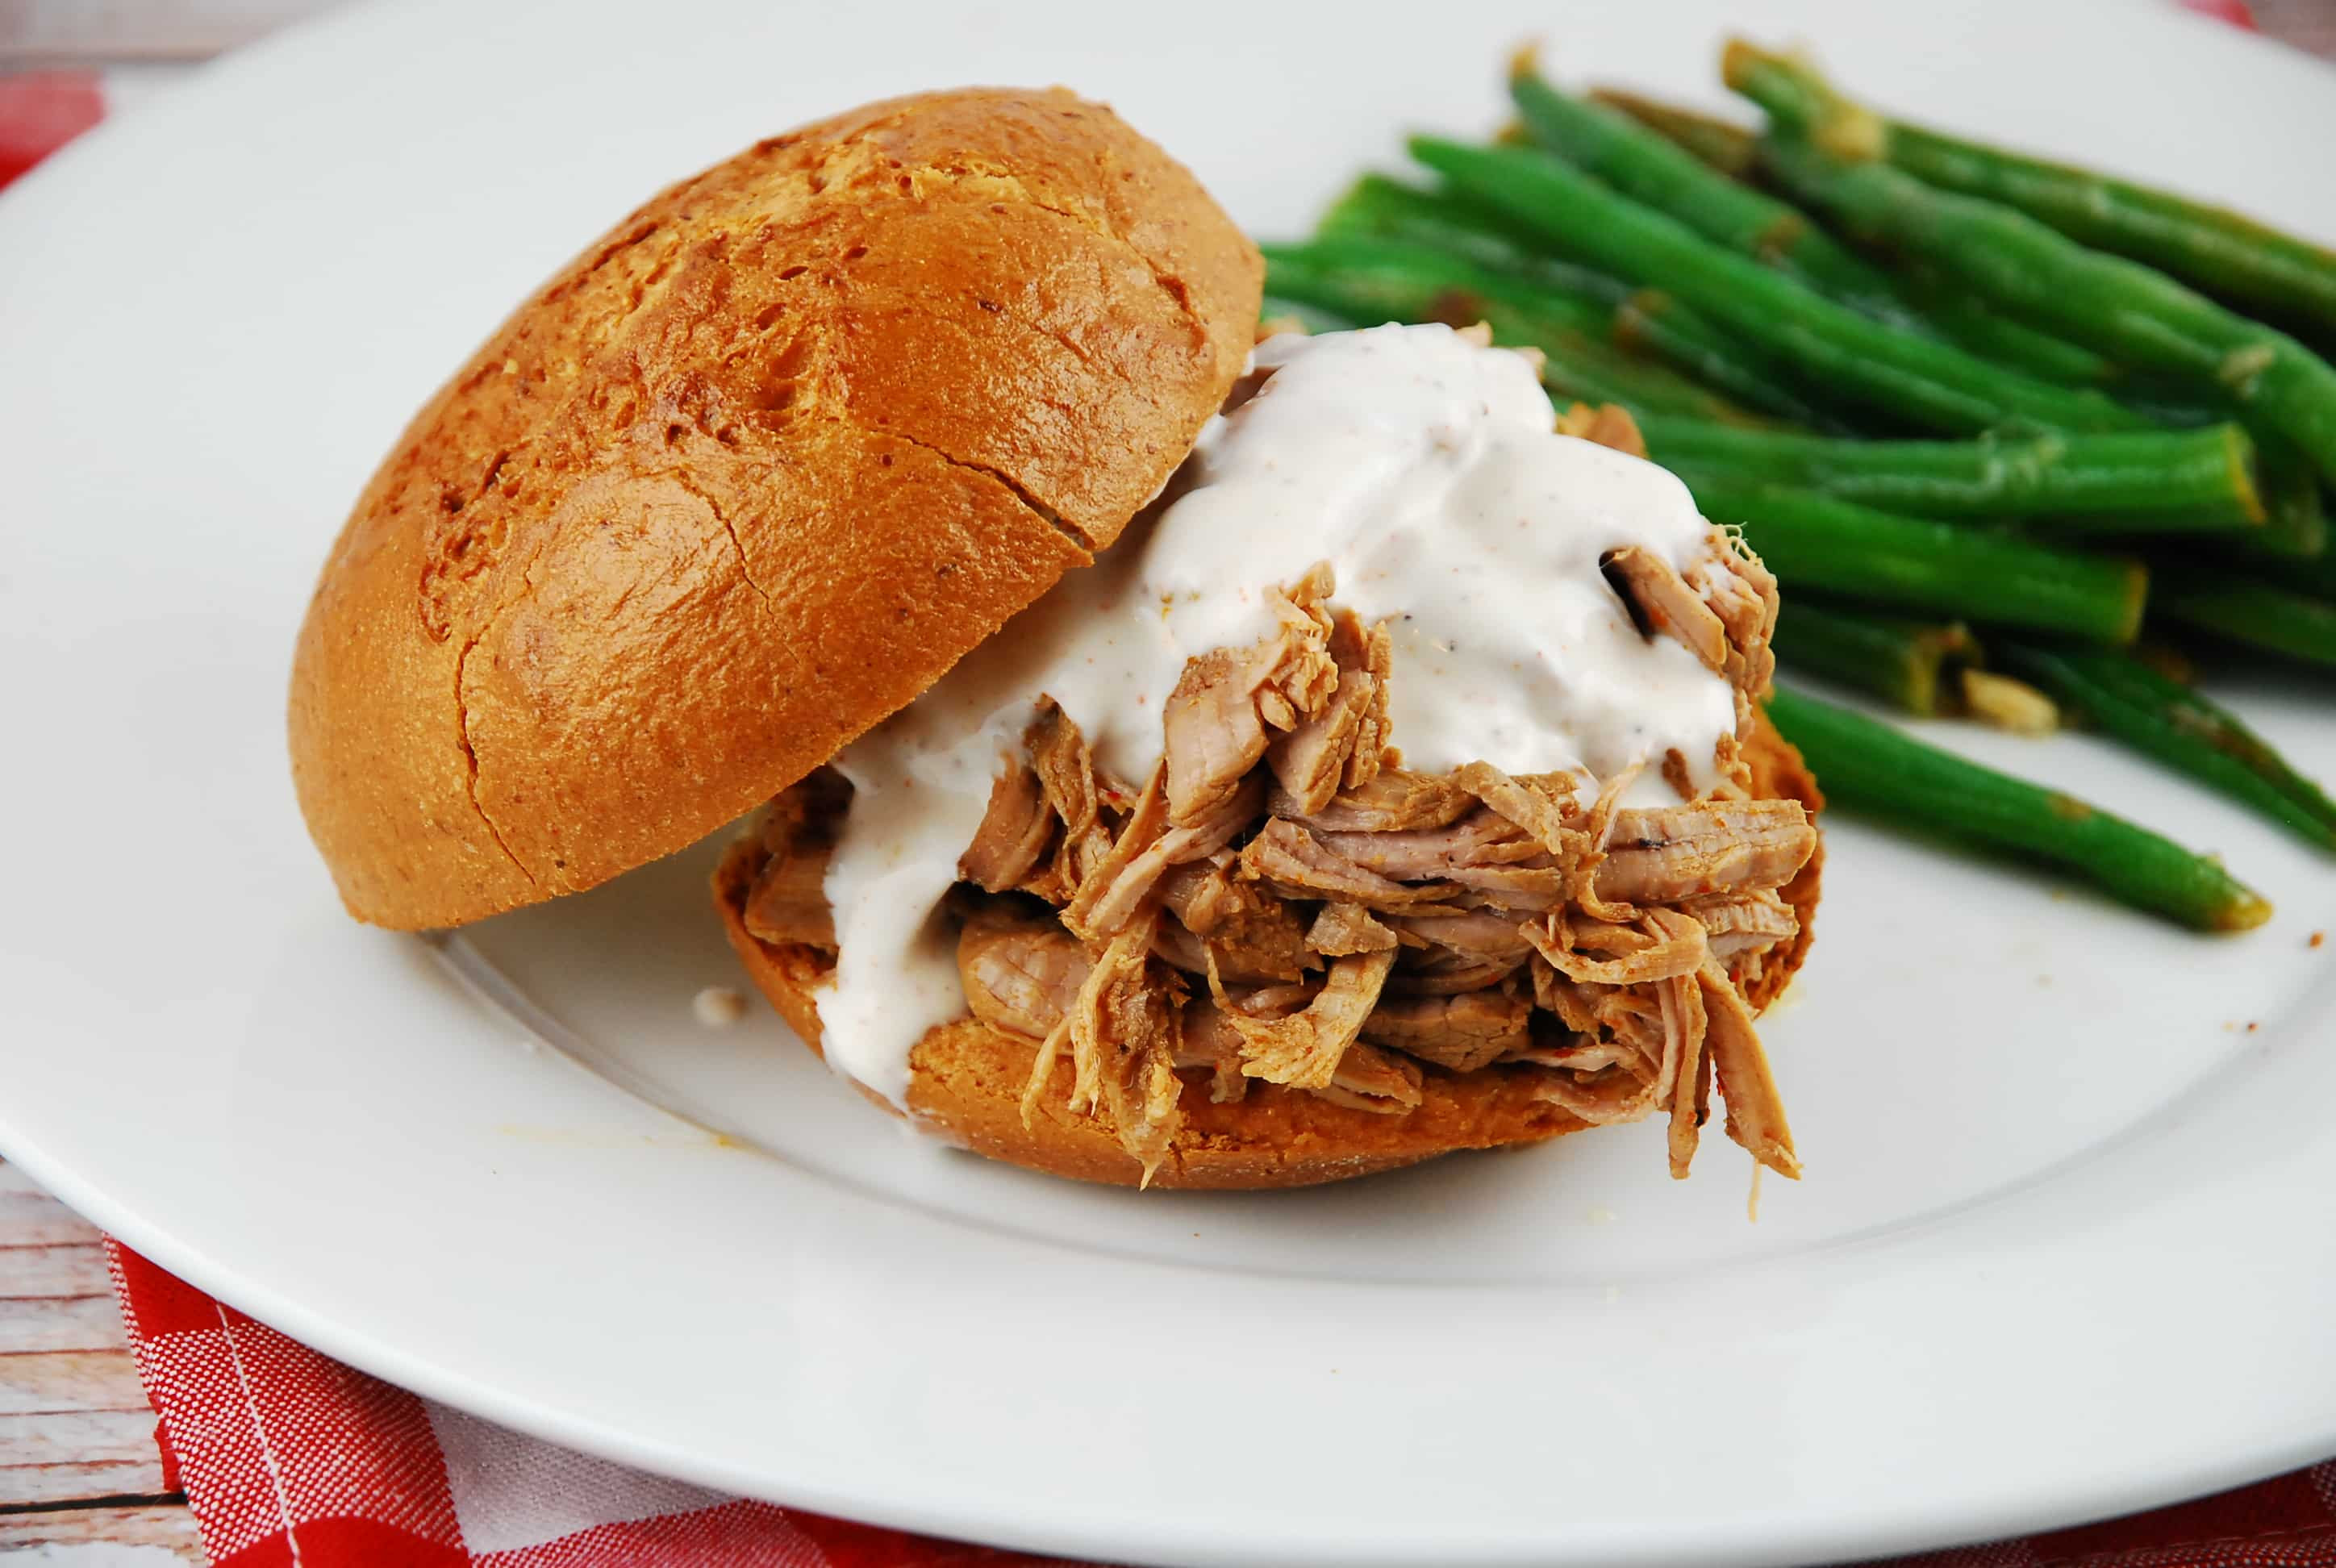 Bbq Sauce For Pulled Pork  bbq sauce pulled pork recipe